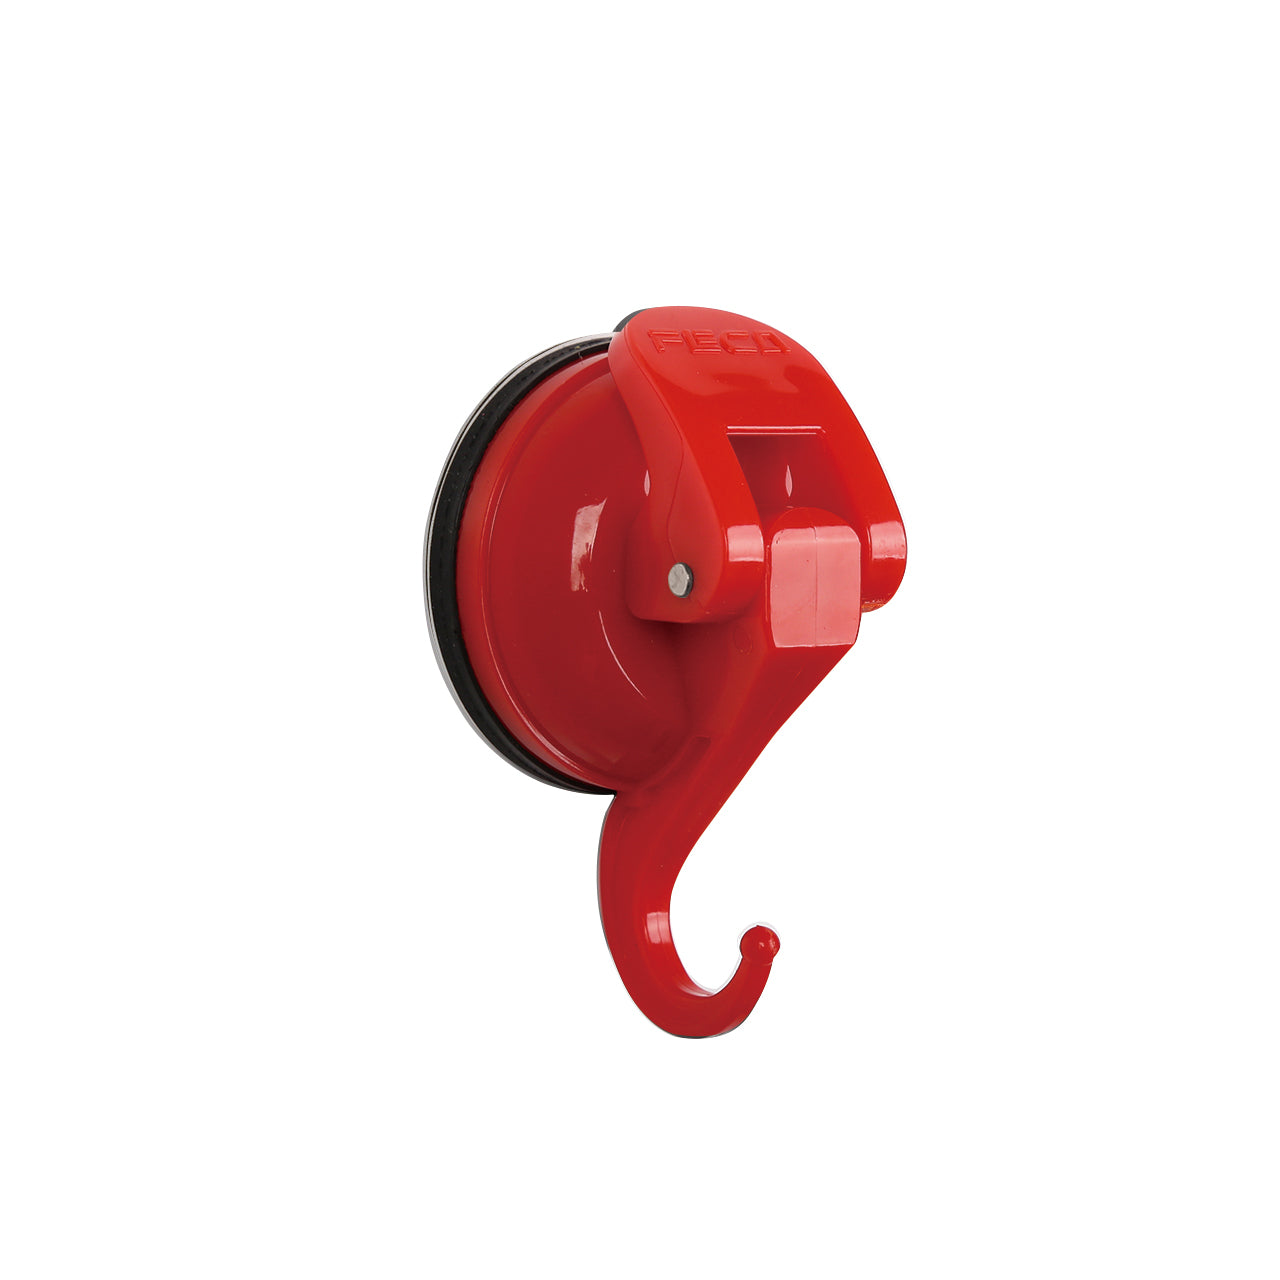 D21 DIANA SUCTION HOOK- Red